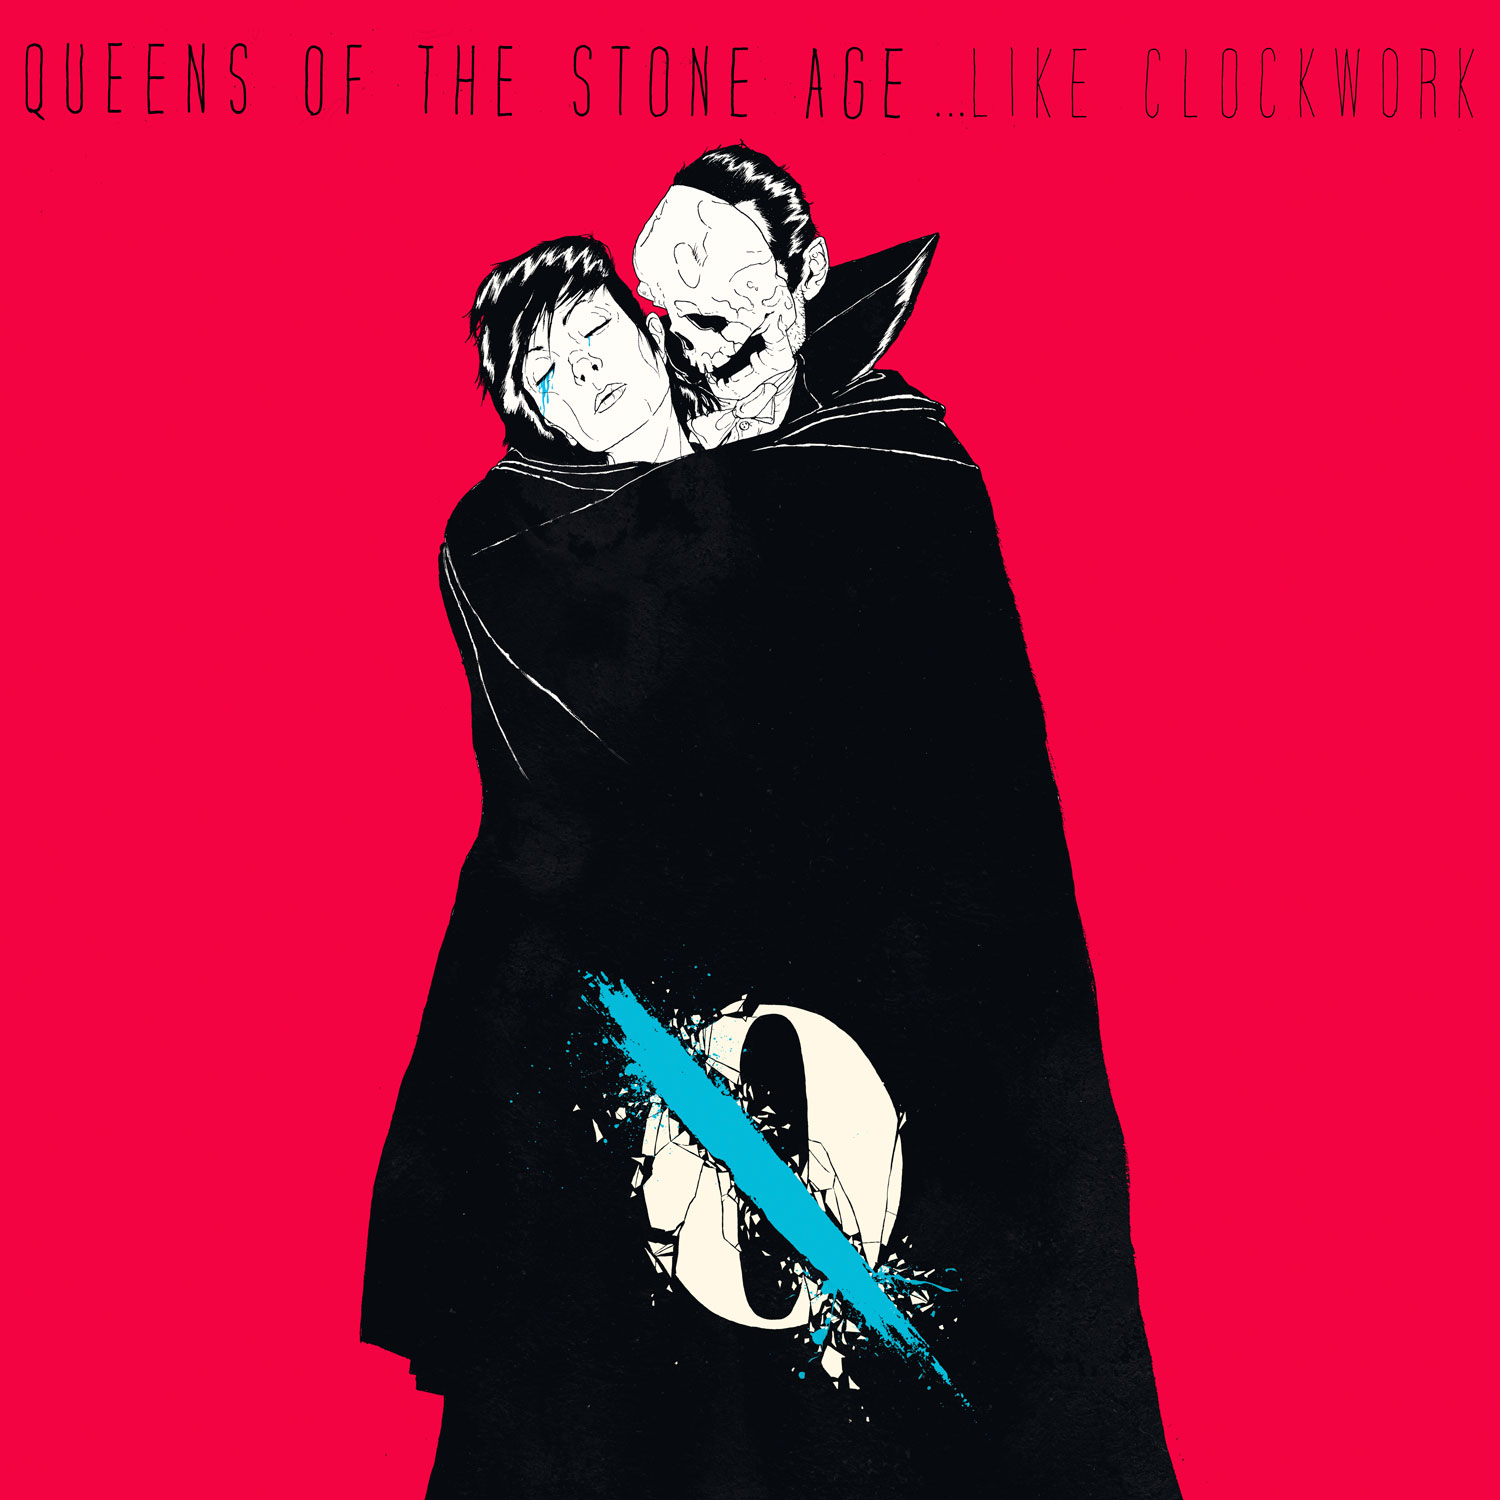 Queens of the Stone Age, portada del disco Like Clockwork